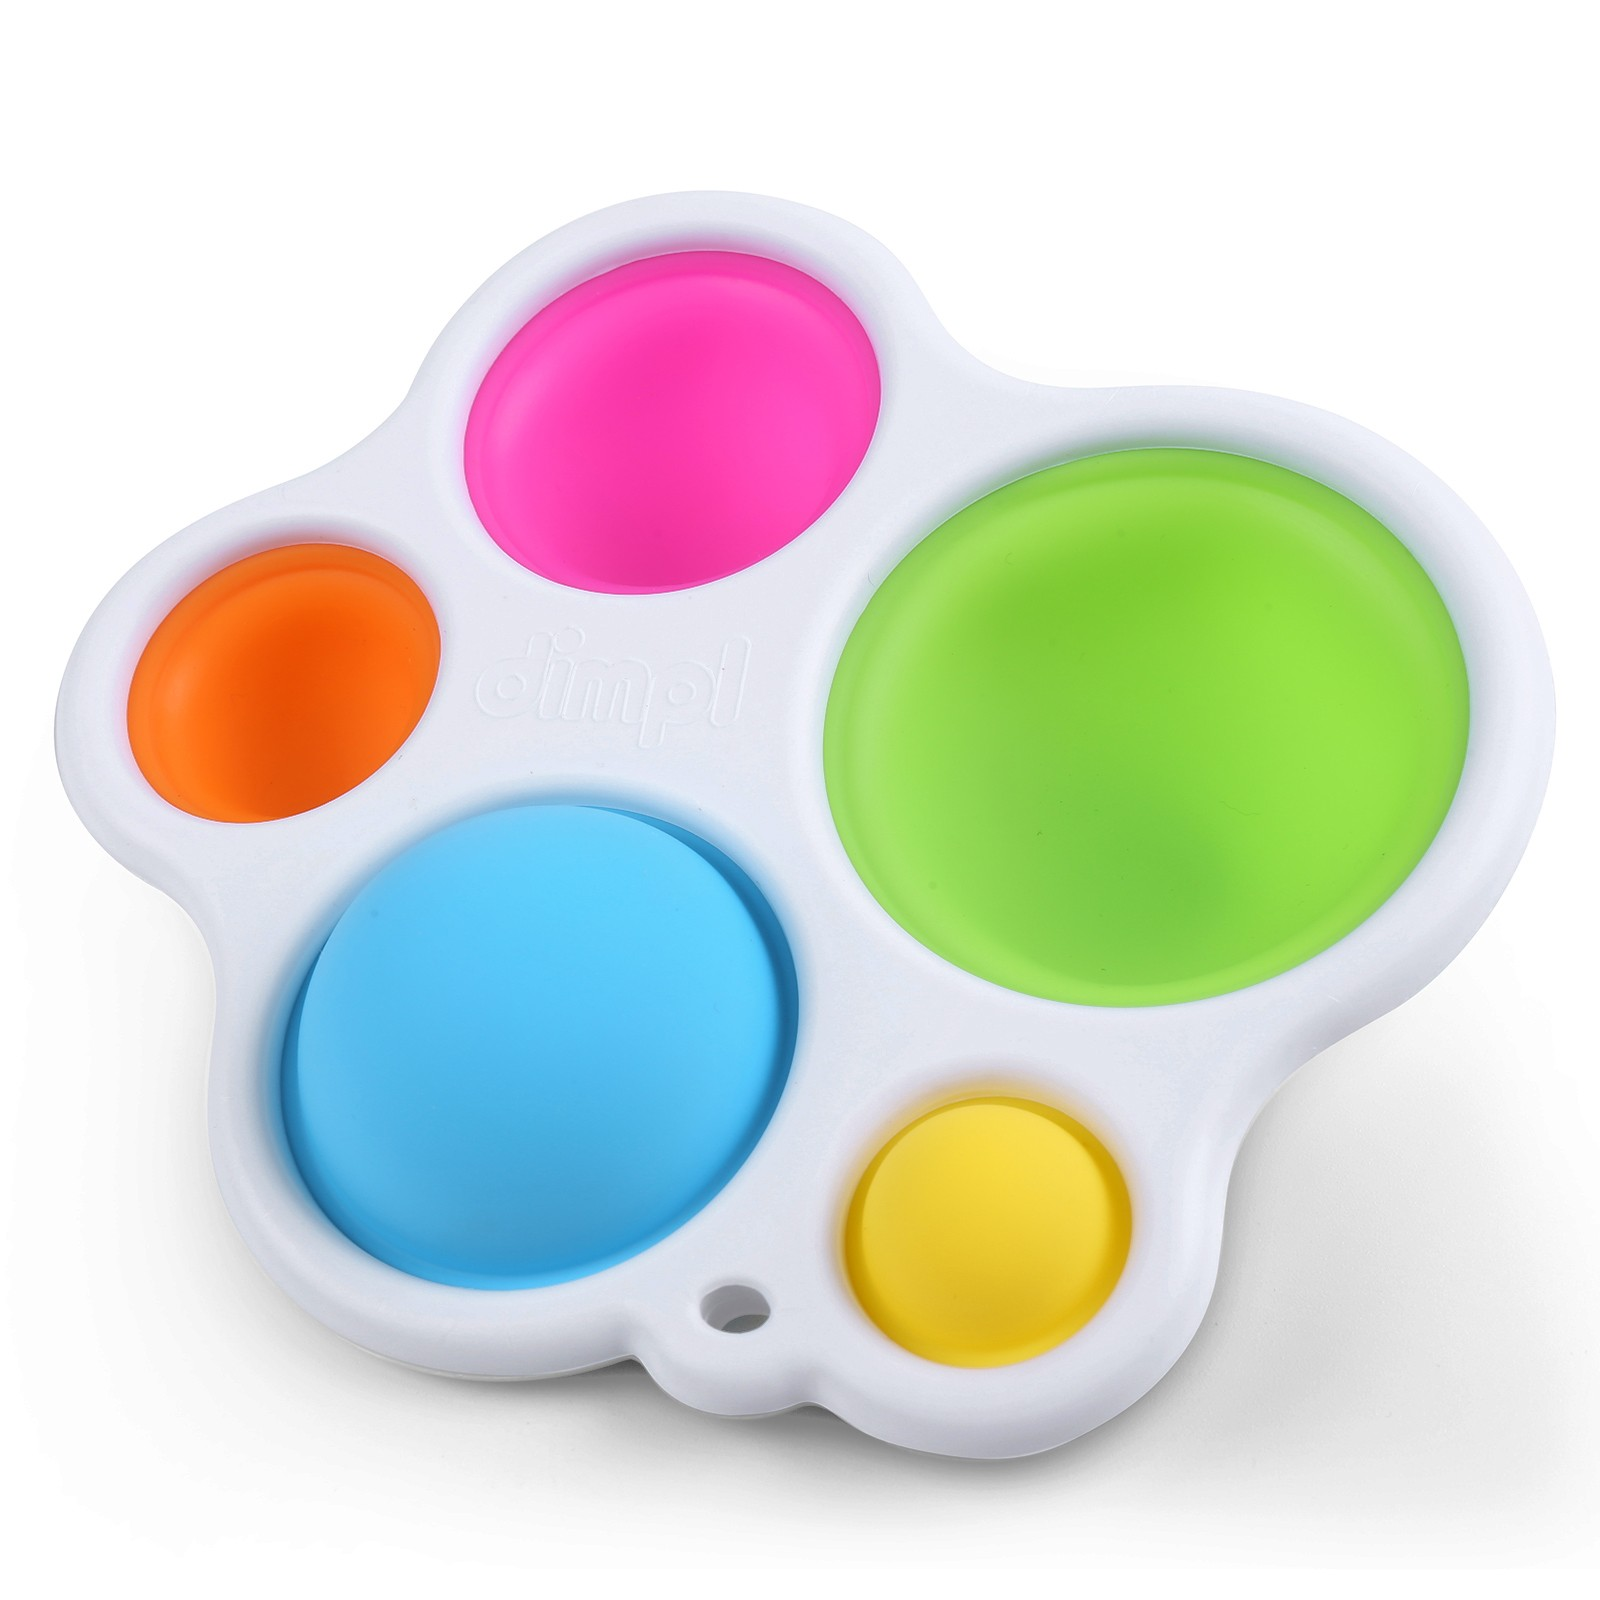 Simple Dimple Fidget Toy Small Fidget Toys Popit Figet Toys Stress Relief For Kids Adults img3